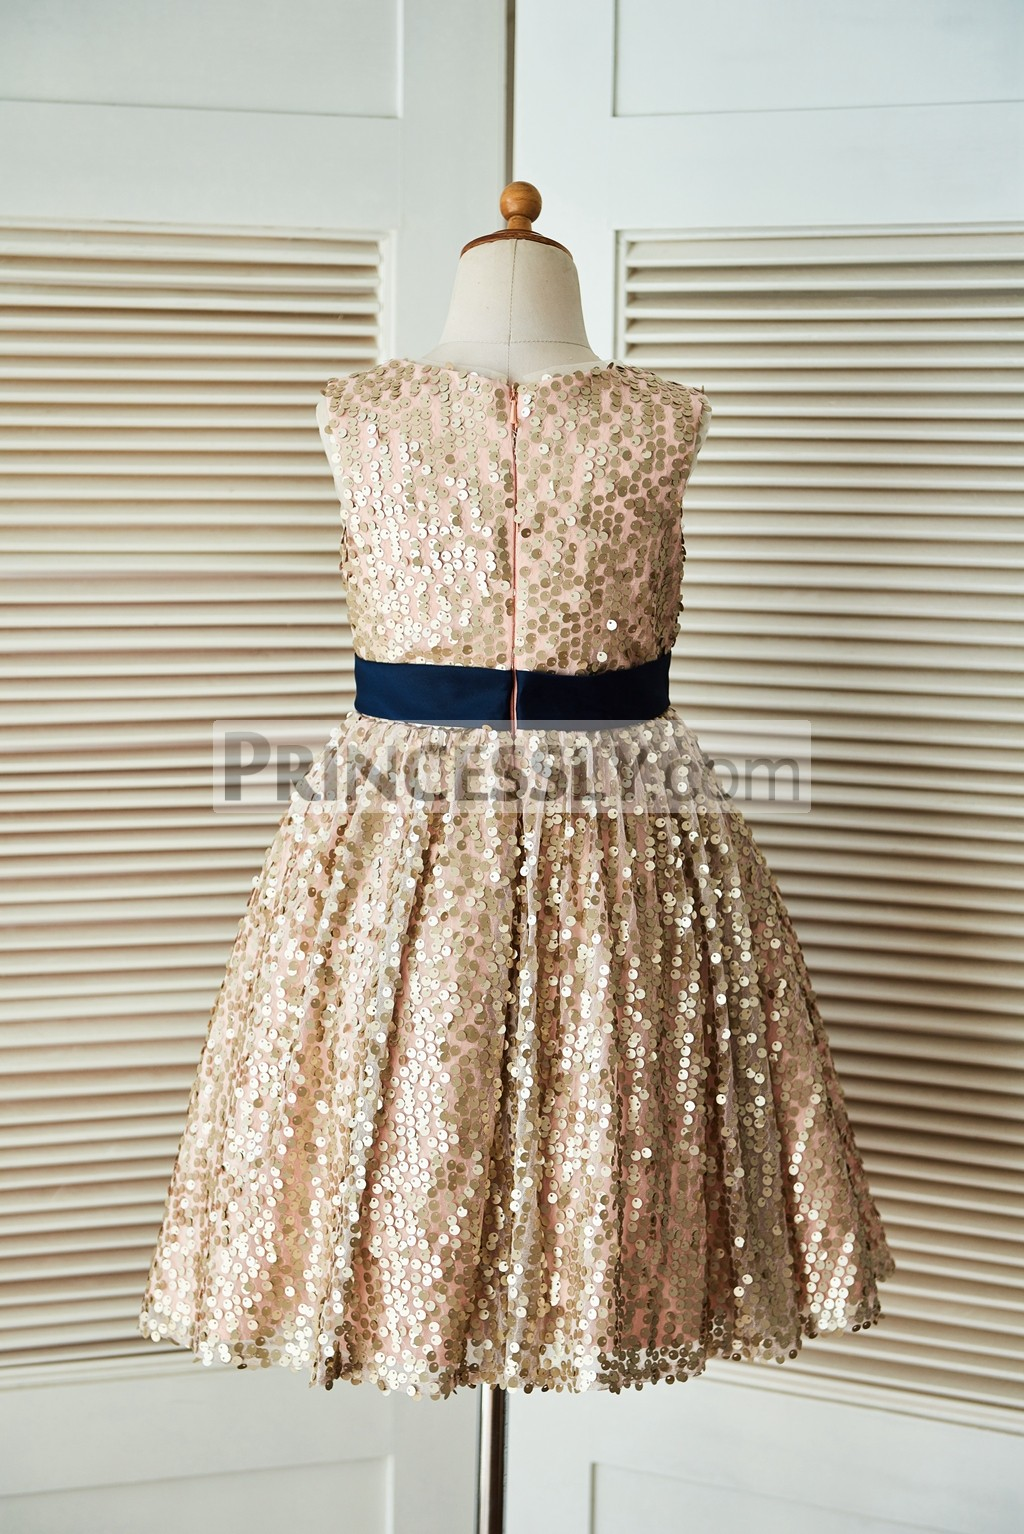 4c12143a33a Champagne Gold Sequin Flower Girl Dress with Navy Blue Belt and Bow ...